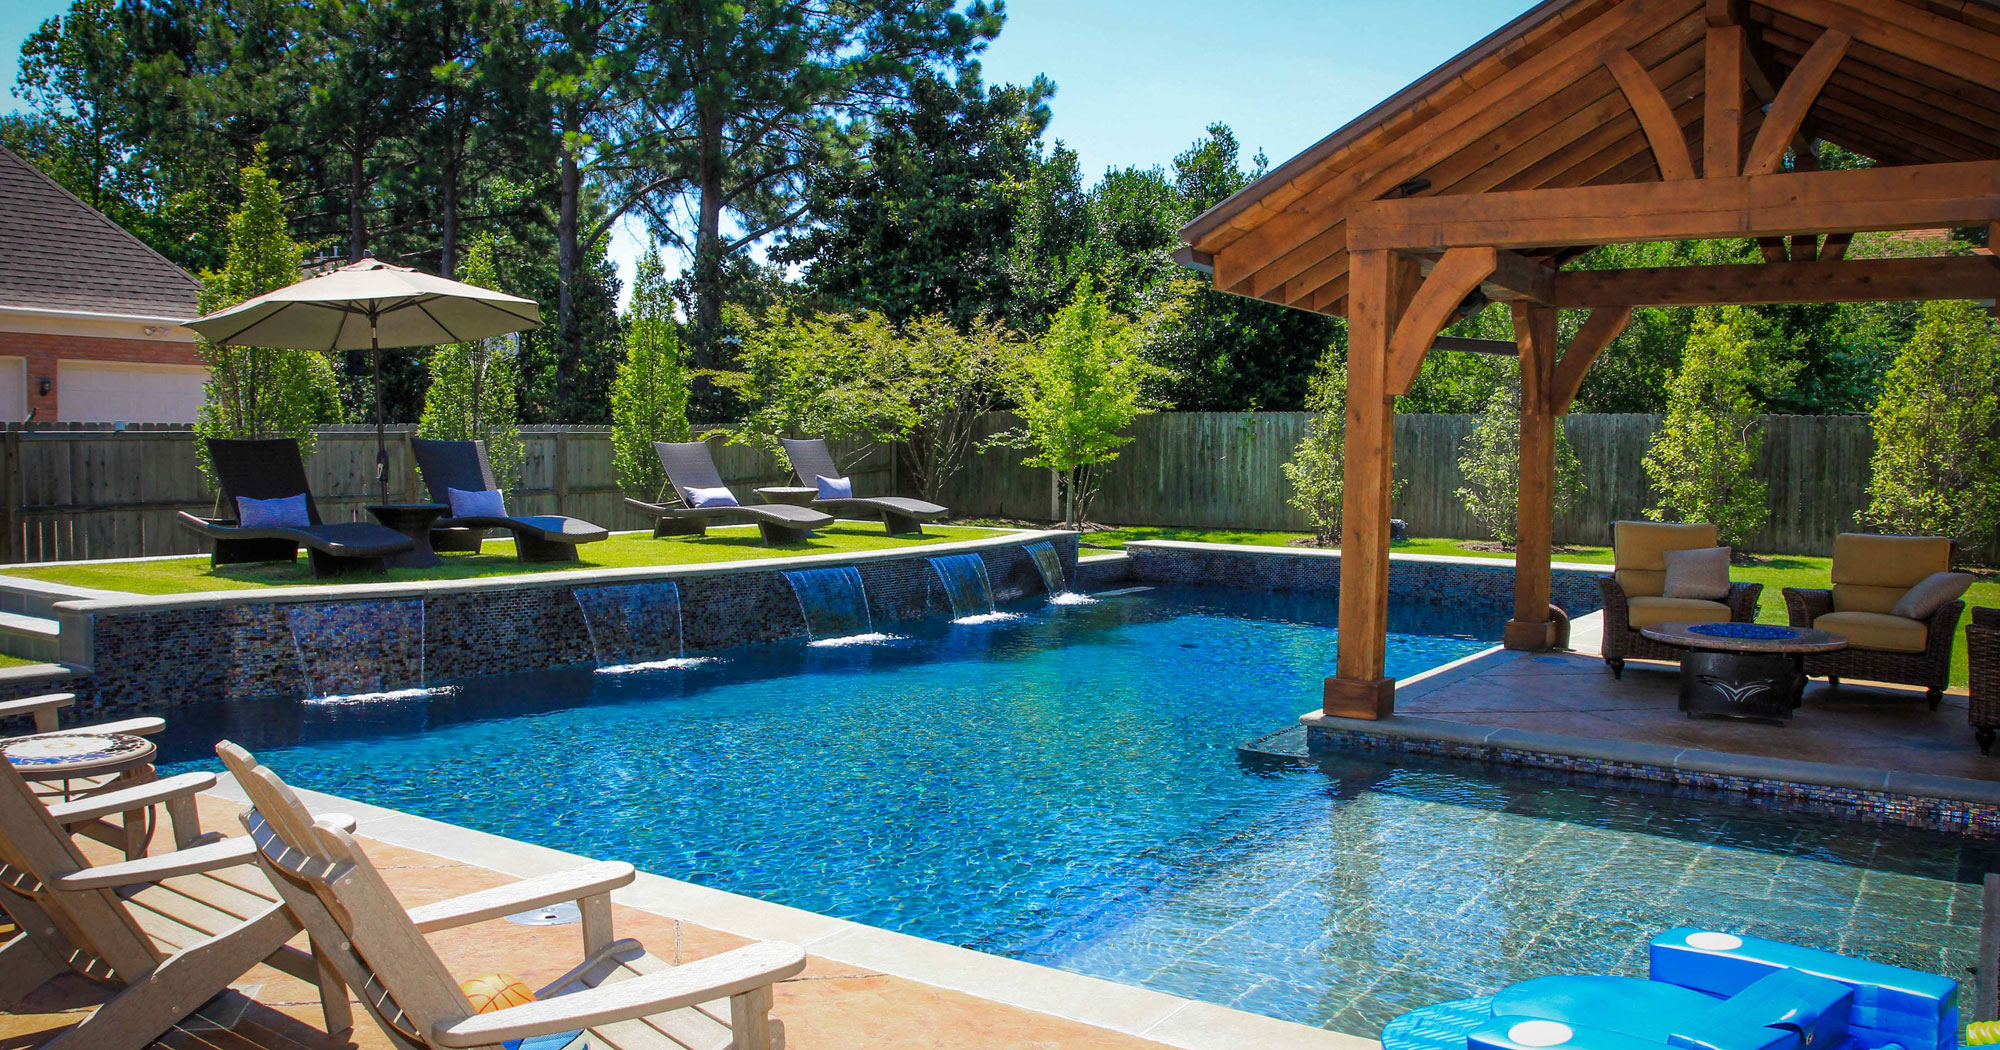 20 Backyard Pool Ideas For The Wealthy Homeowner pertaining to 14 Smart Designs of How to Improve Small Pool Ideas For Backyards